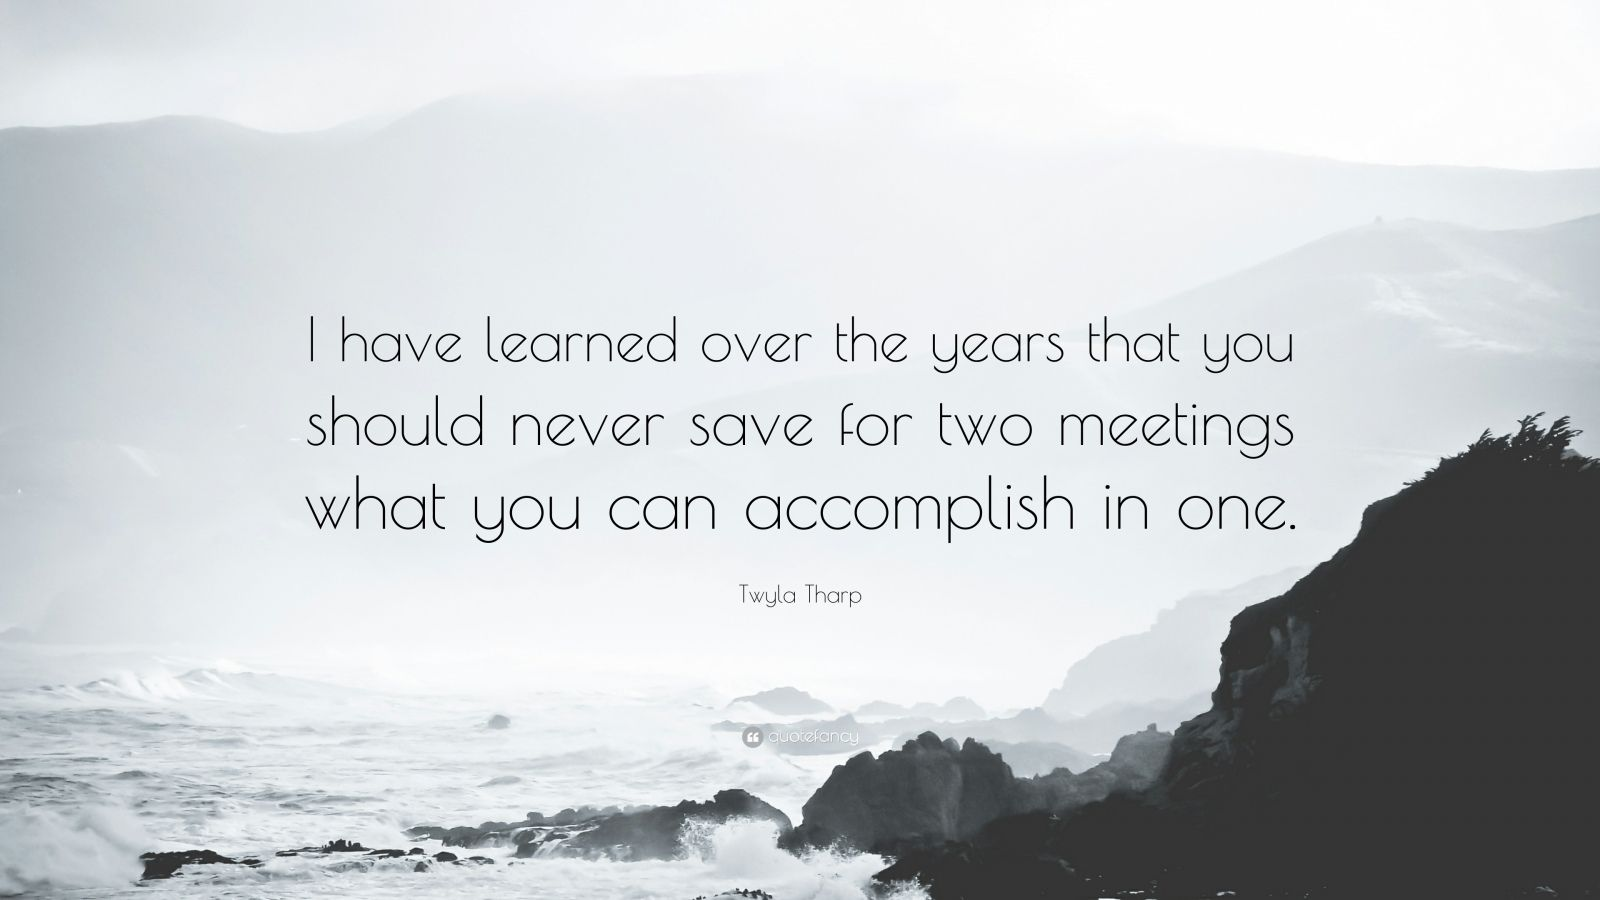 """Twyla Tharp Quote: """"I have learned over the years that you should never save for two meetings what you can accomplish in one."""""""